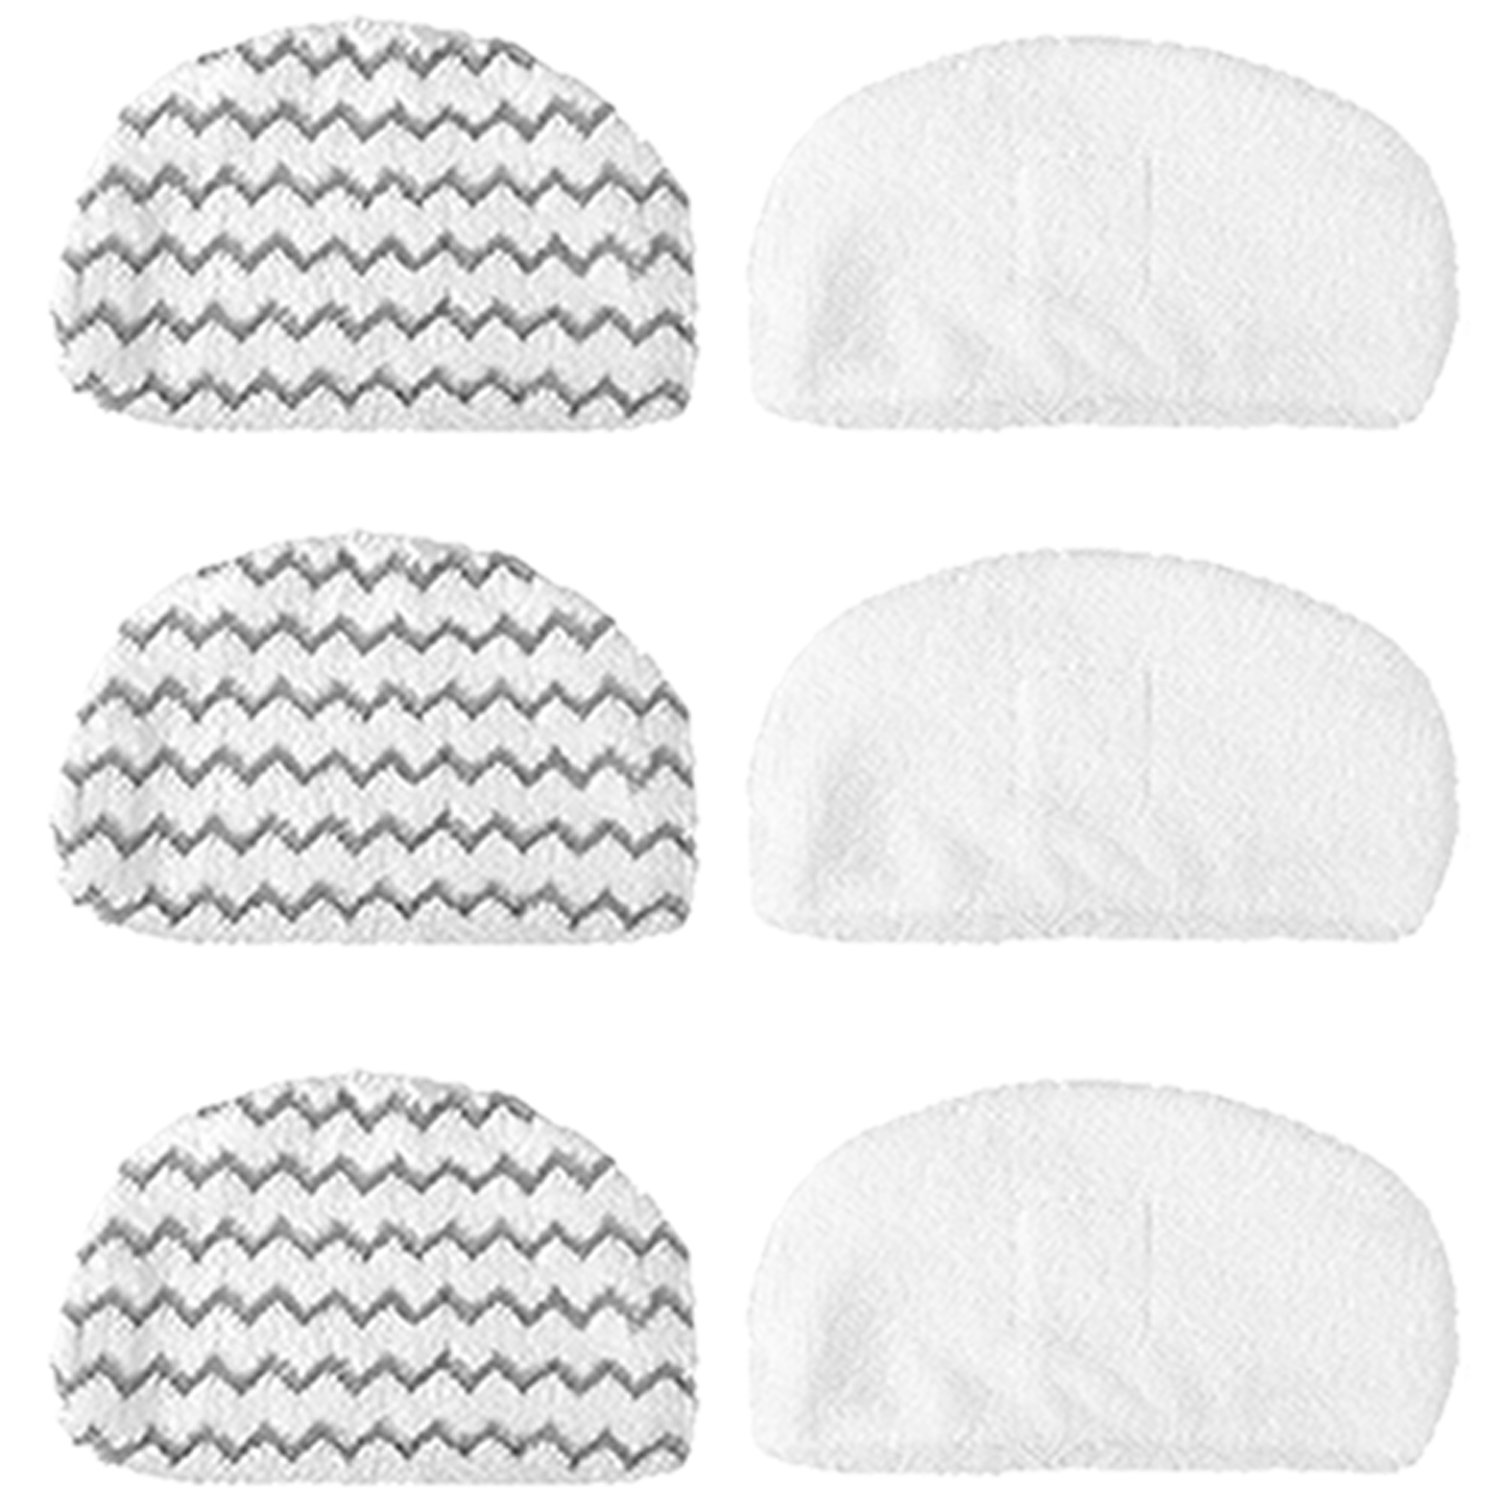 Amyehouse 6 Pcs Washable Mopping & Scrubbing Pads Replacement for Bissell Powerfresh 1940 1440 1544 Series Steam Mop, Model 1544A, 2075A, 1440, 1940W, 19404, 1806, 1940A, 5938, 19408, 1940Q, 1940W 20180313-4